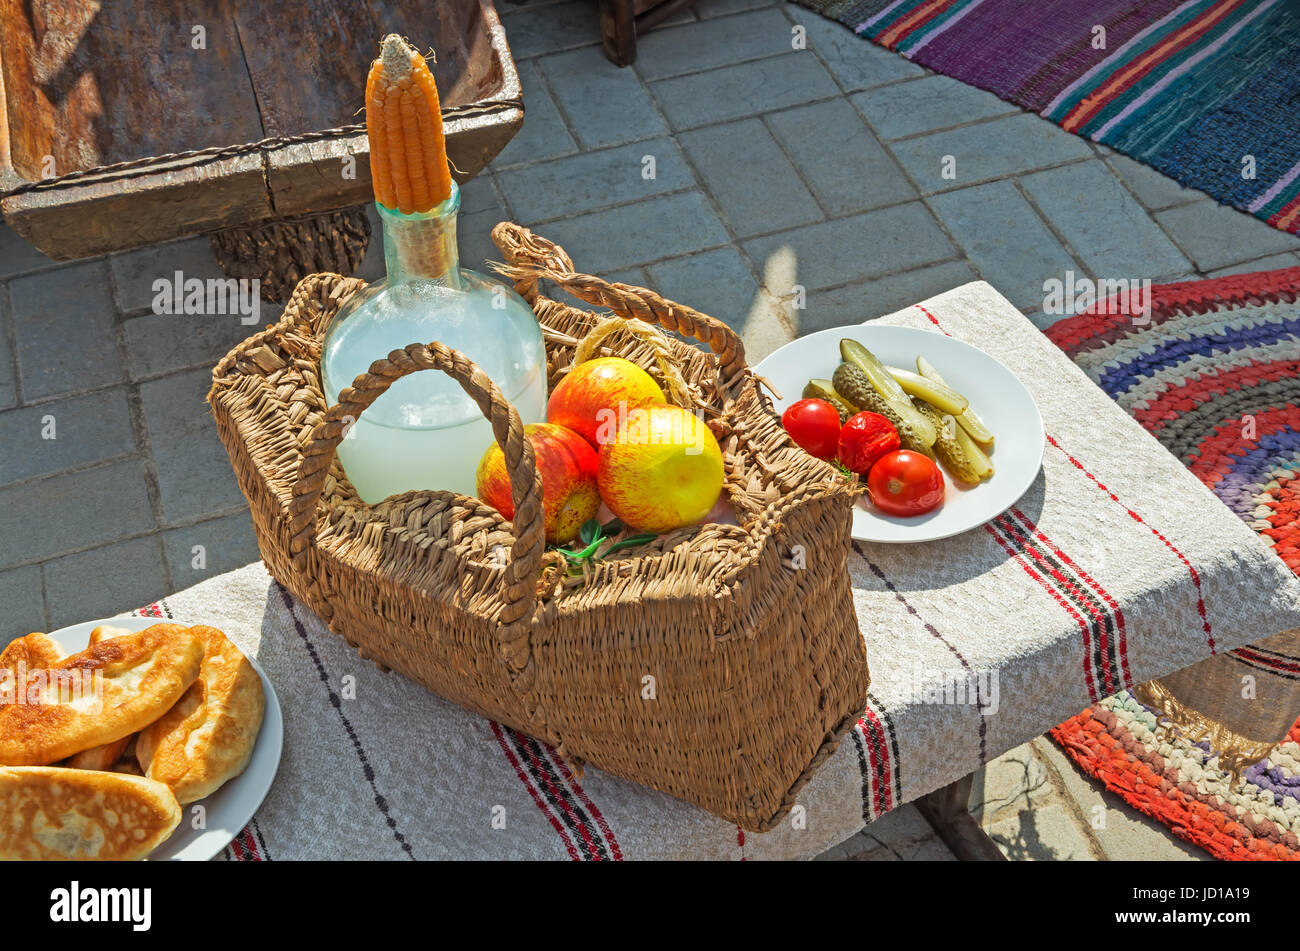 Ukrainian traditional rural food festival dedicated to the City Day - Stock Image